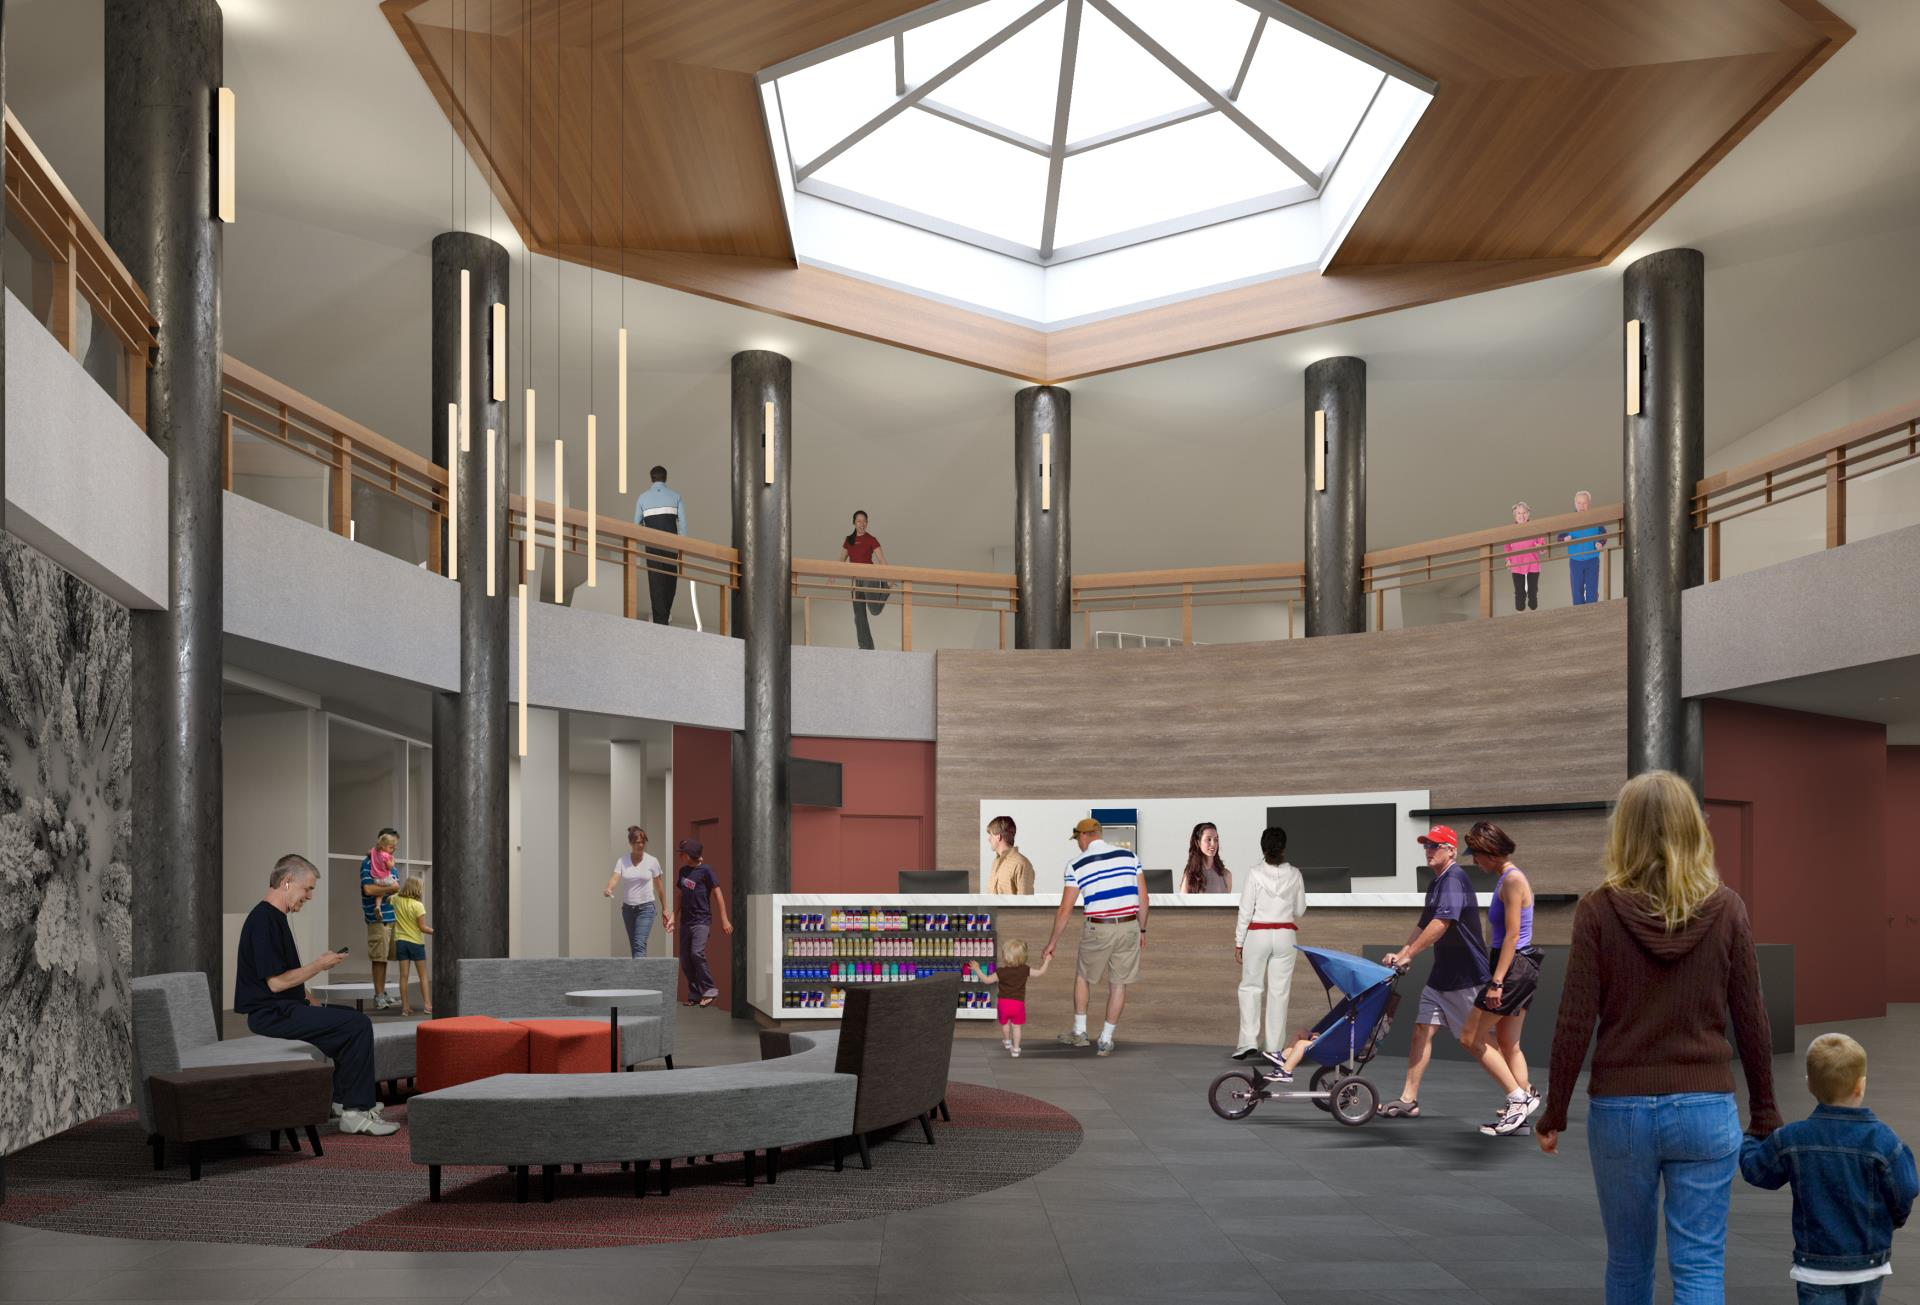 Breckenridge Recreation Center Lobby